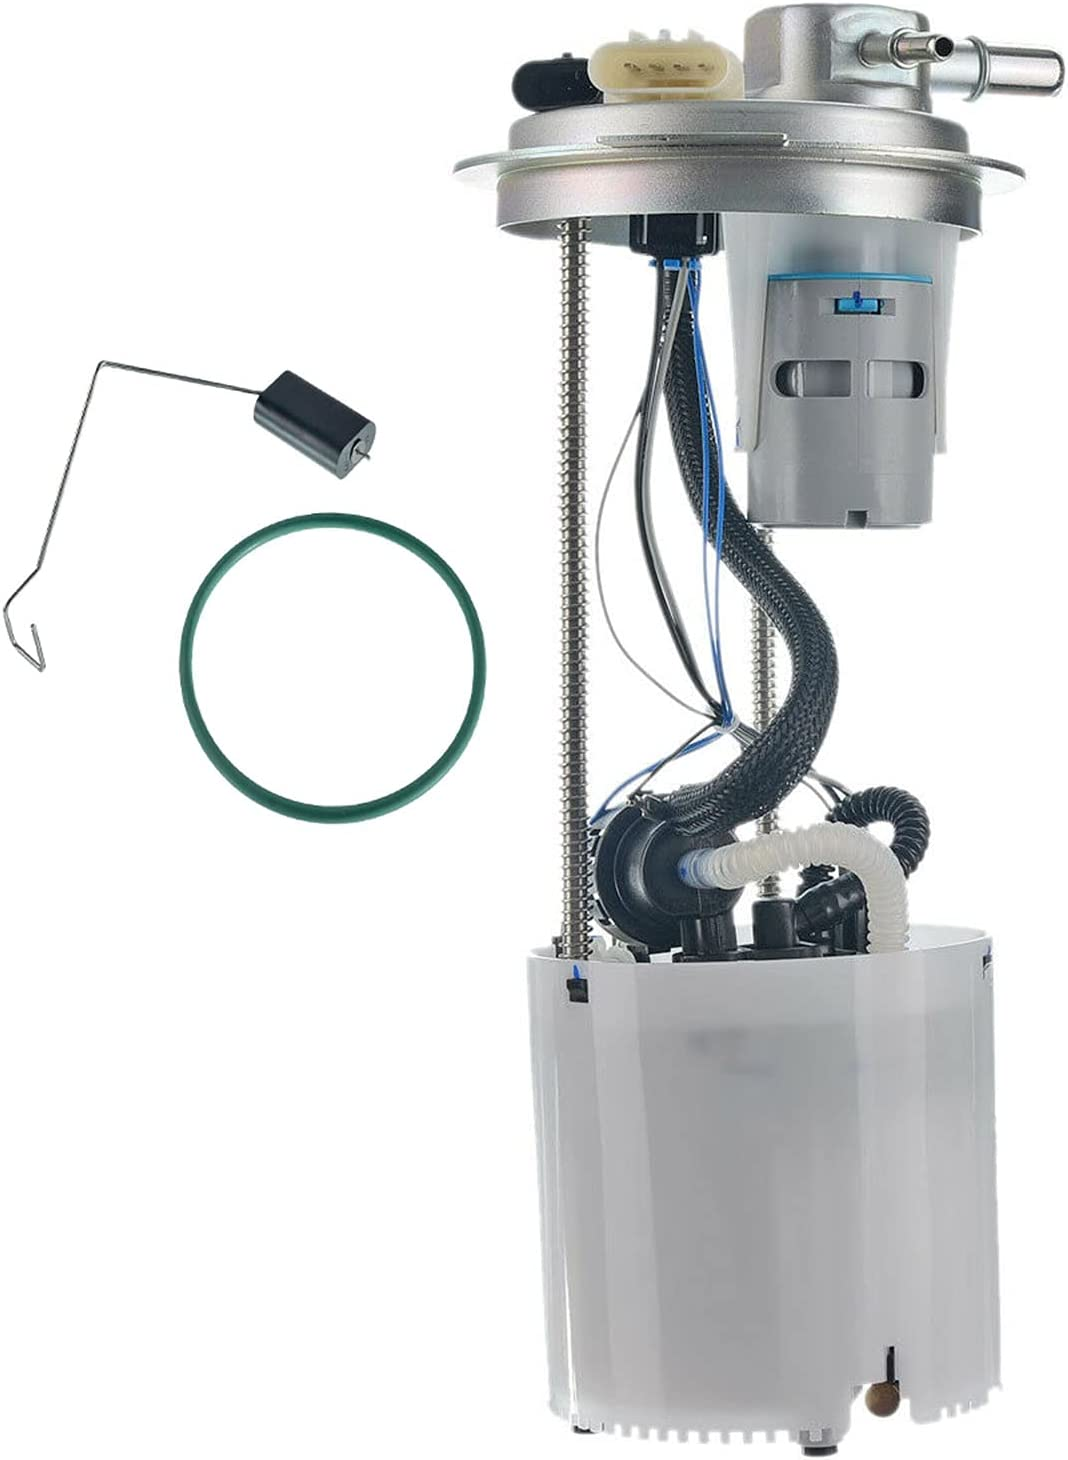 Hconcet Nippon regular agency Fuel Pump Tucson Mall Assembly Compatible Chevrolet with 1 Silverado